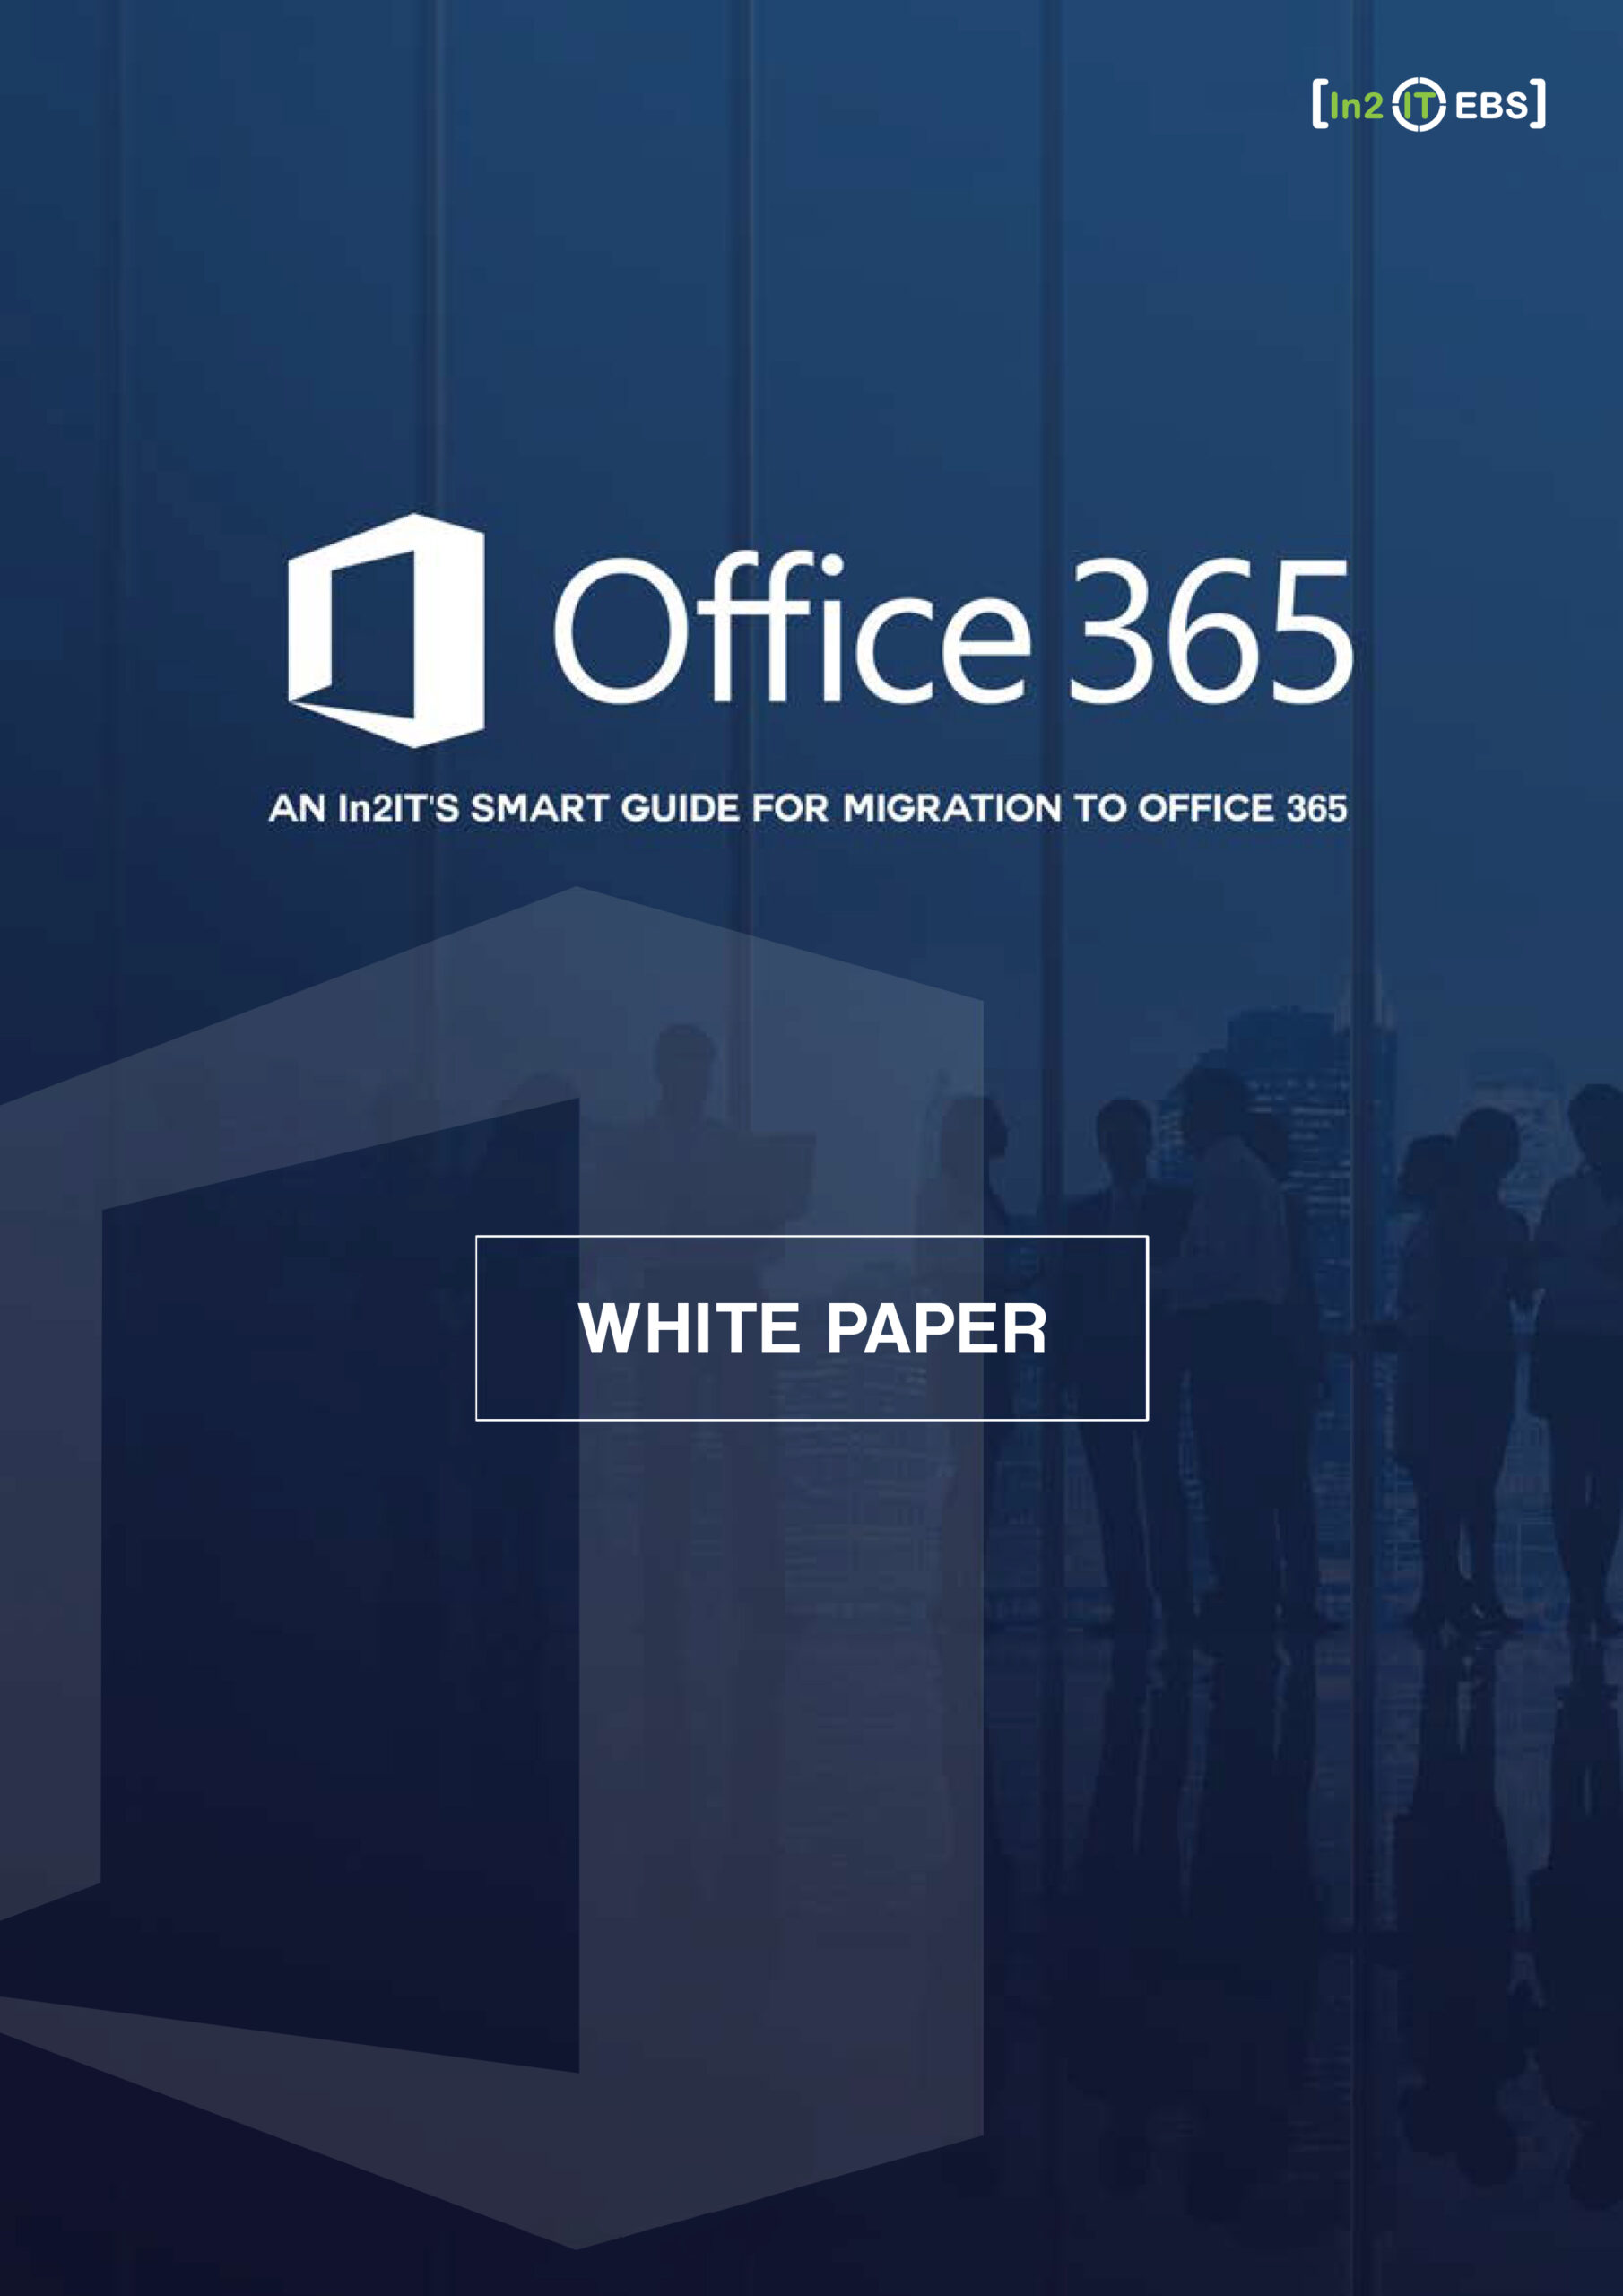 White-Paper-In2ITs-Smart-Guide-for-Migration-to-Office-365-1